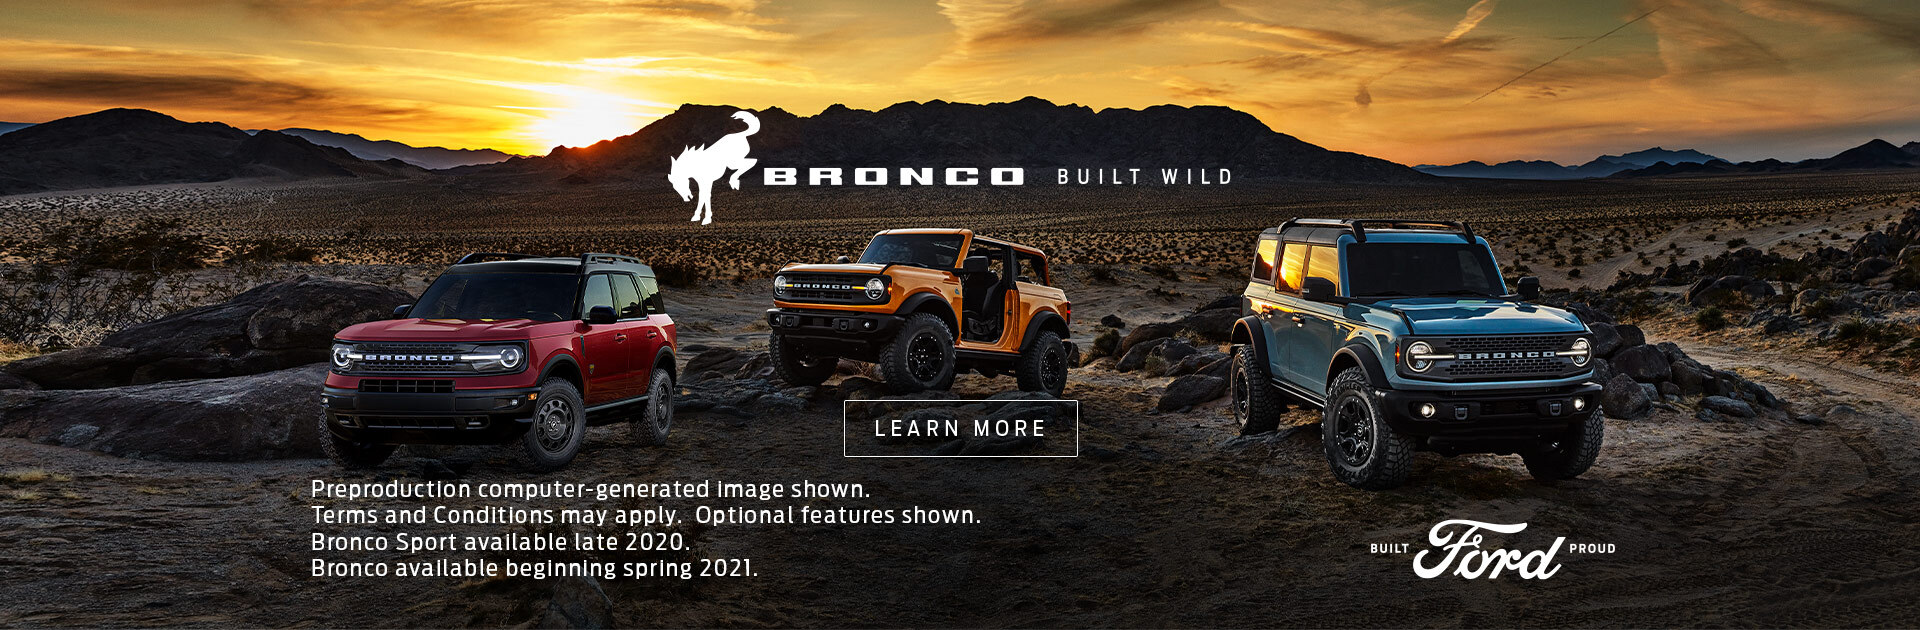 Broncoreveal Dealercon 2 1920x630